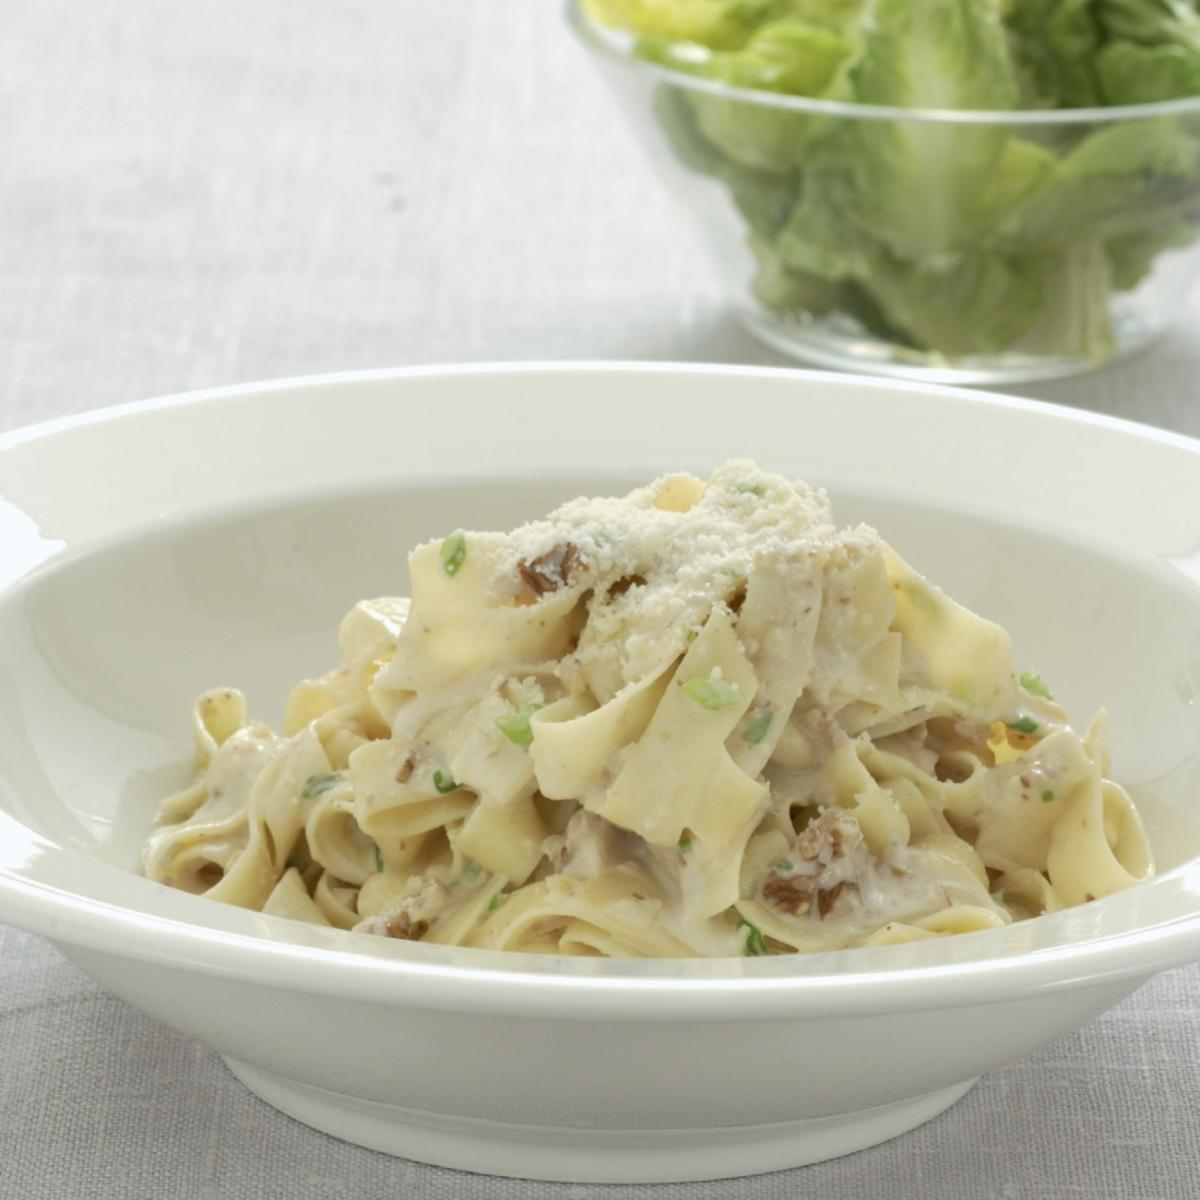 Vegetarian tagliatelle with gorgonzola and toasted walnuts